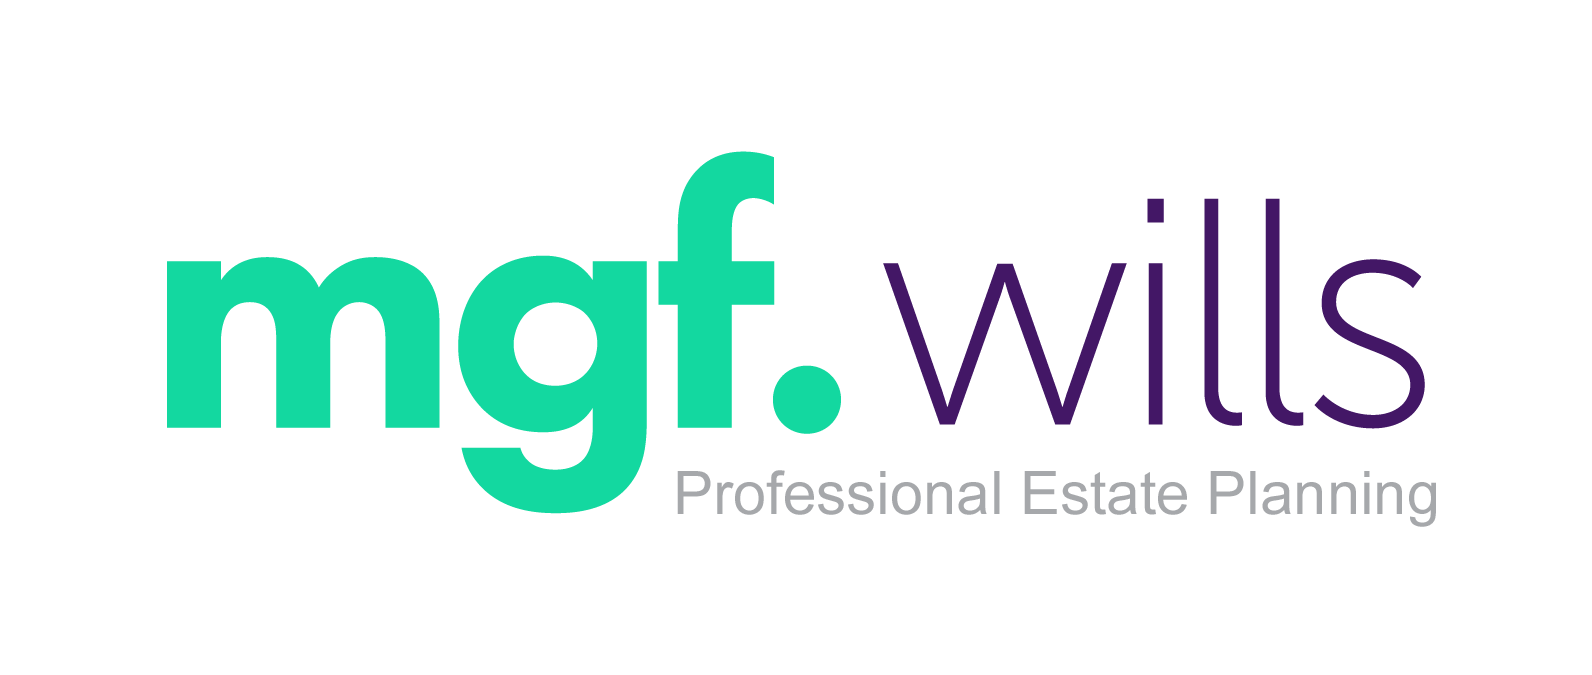 MGF Wills Logo - Home